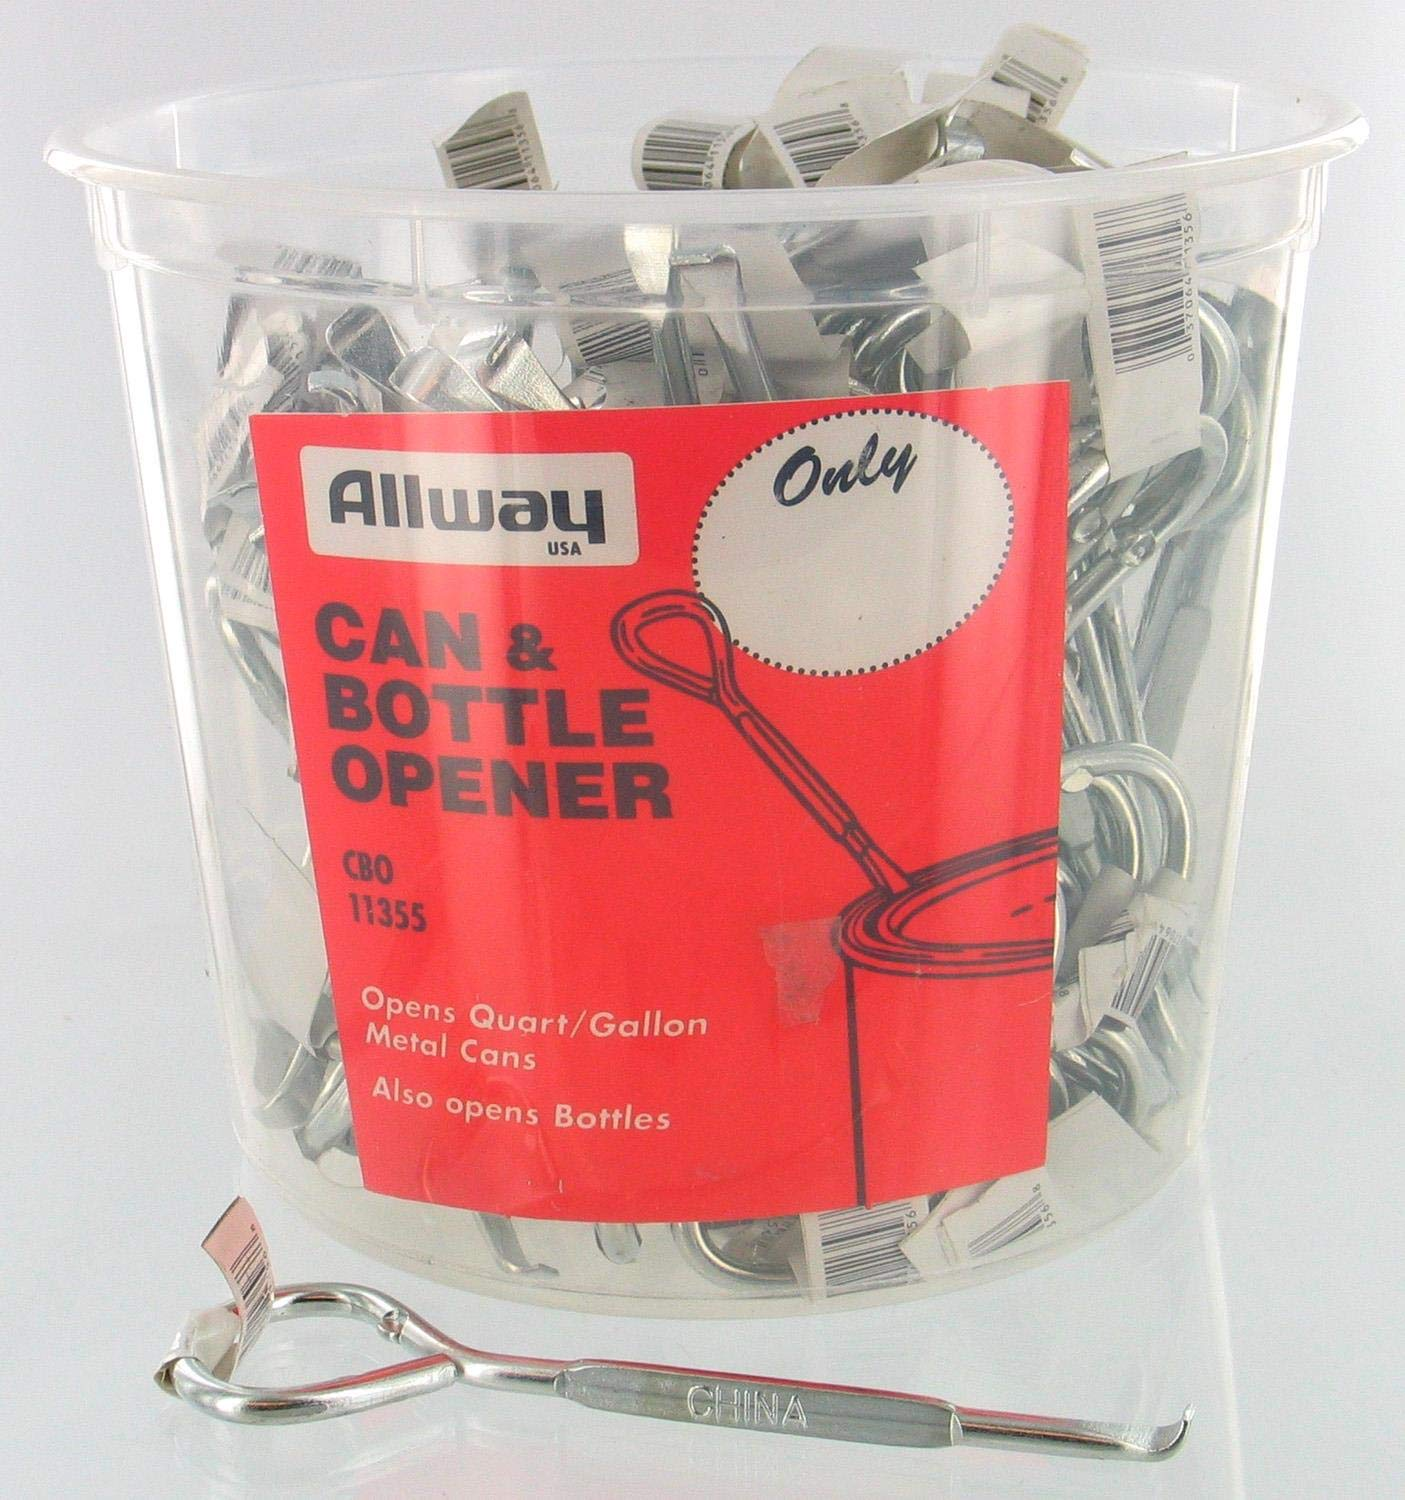 Allway Tools Cbo100 Can/Bttl Opener 100/Bkt by Allway Tools